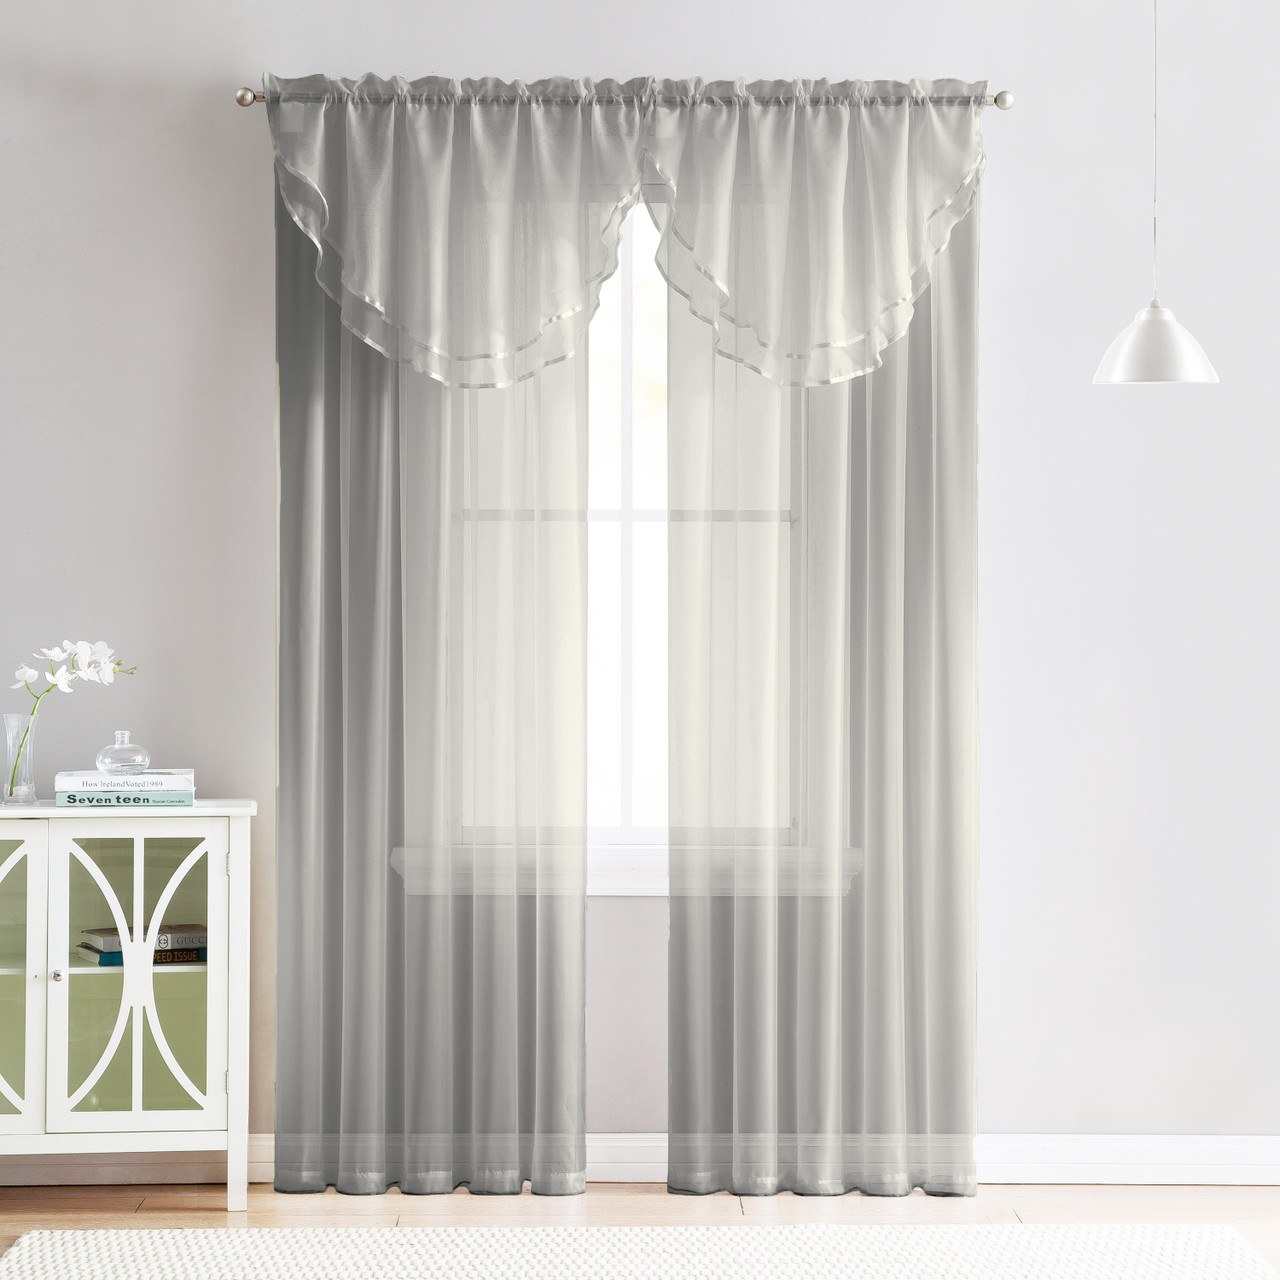 4 Piece Sheer Window Curtain Set for Living Room, Dining Room, Bay Windows:  2 Voile Valance Curtains and 2 Panels 90 in Long (Silver)